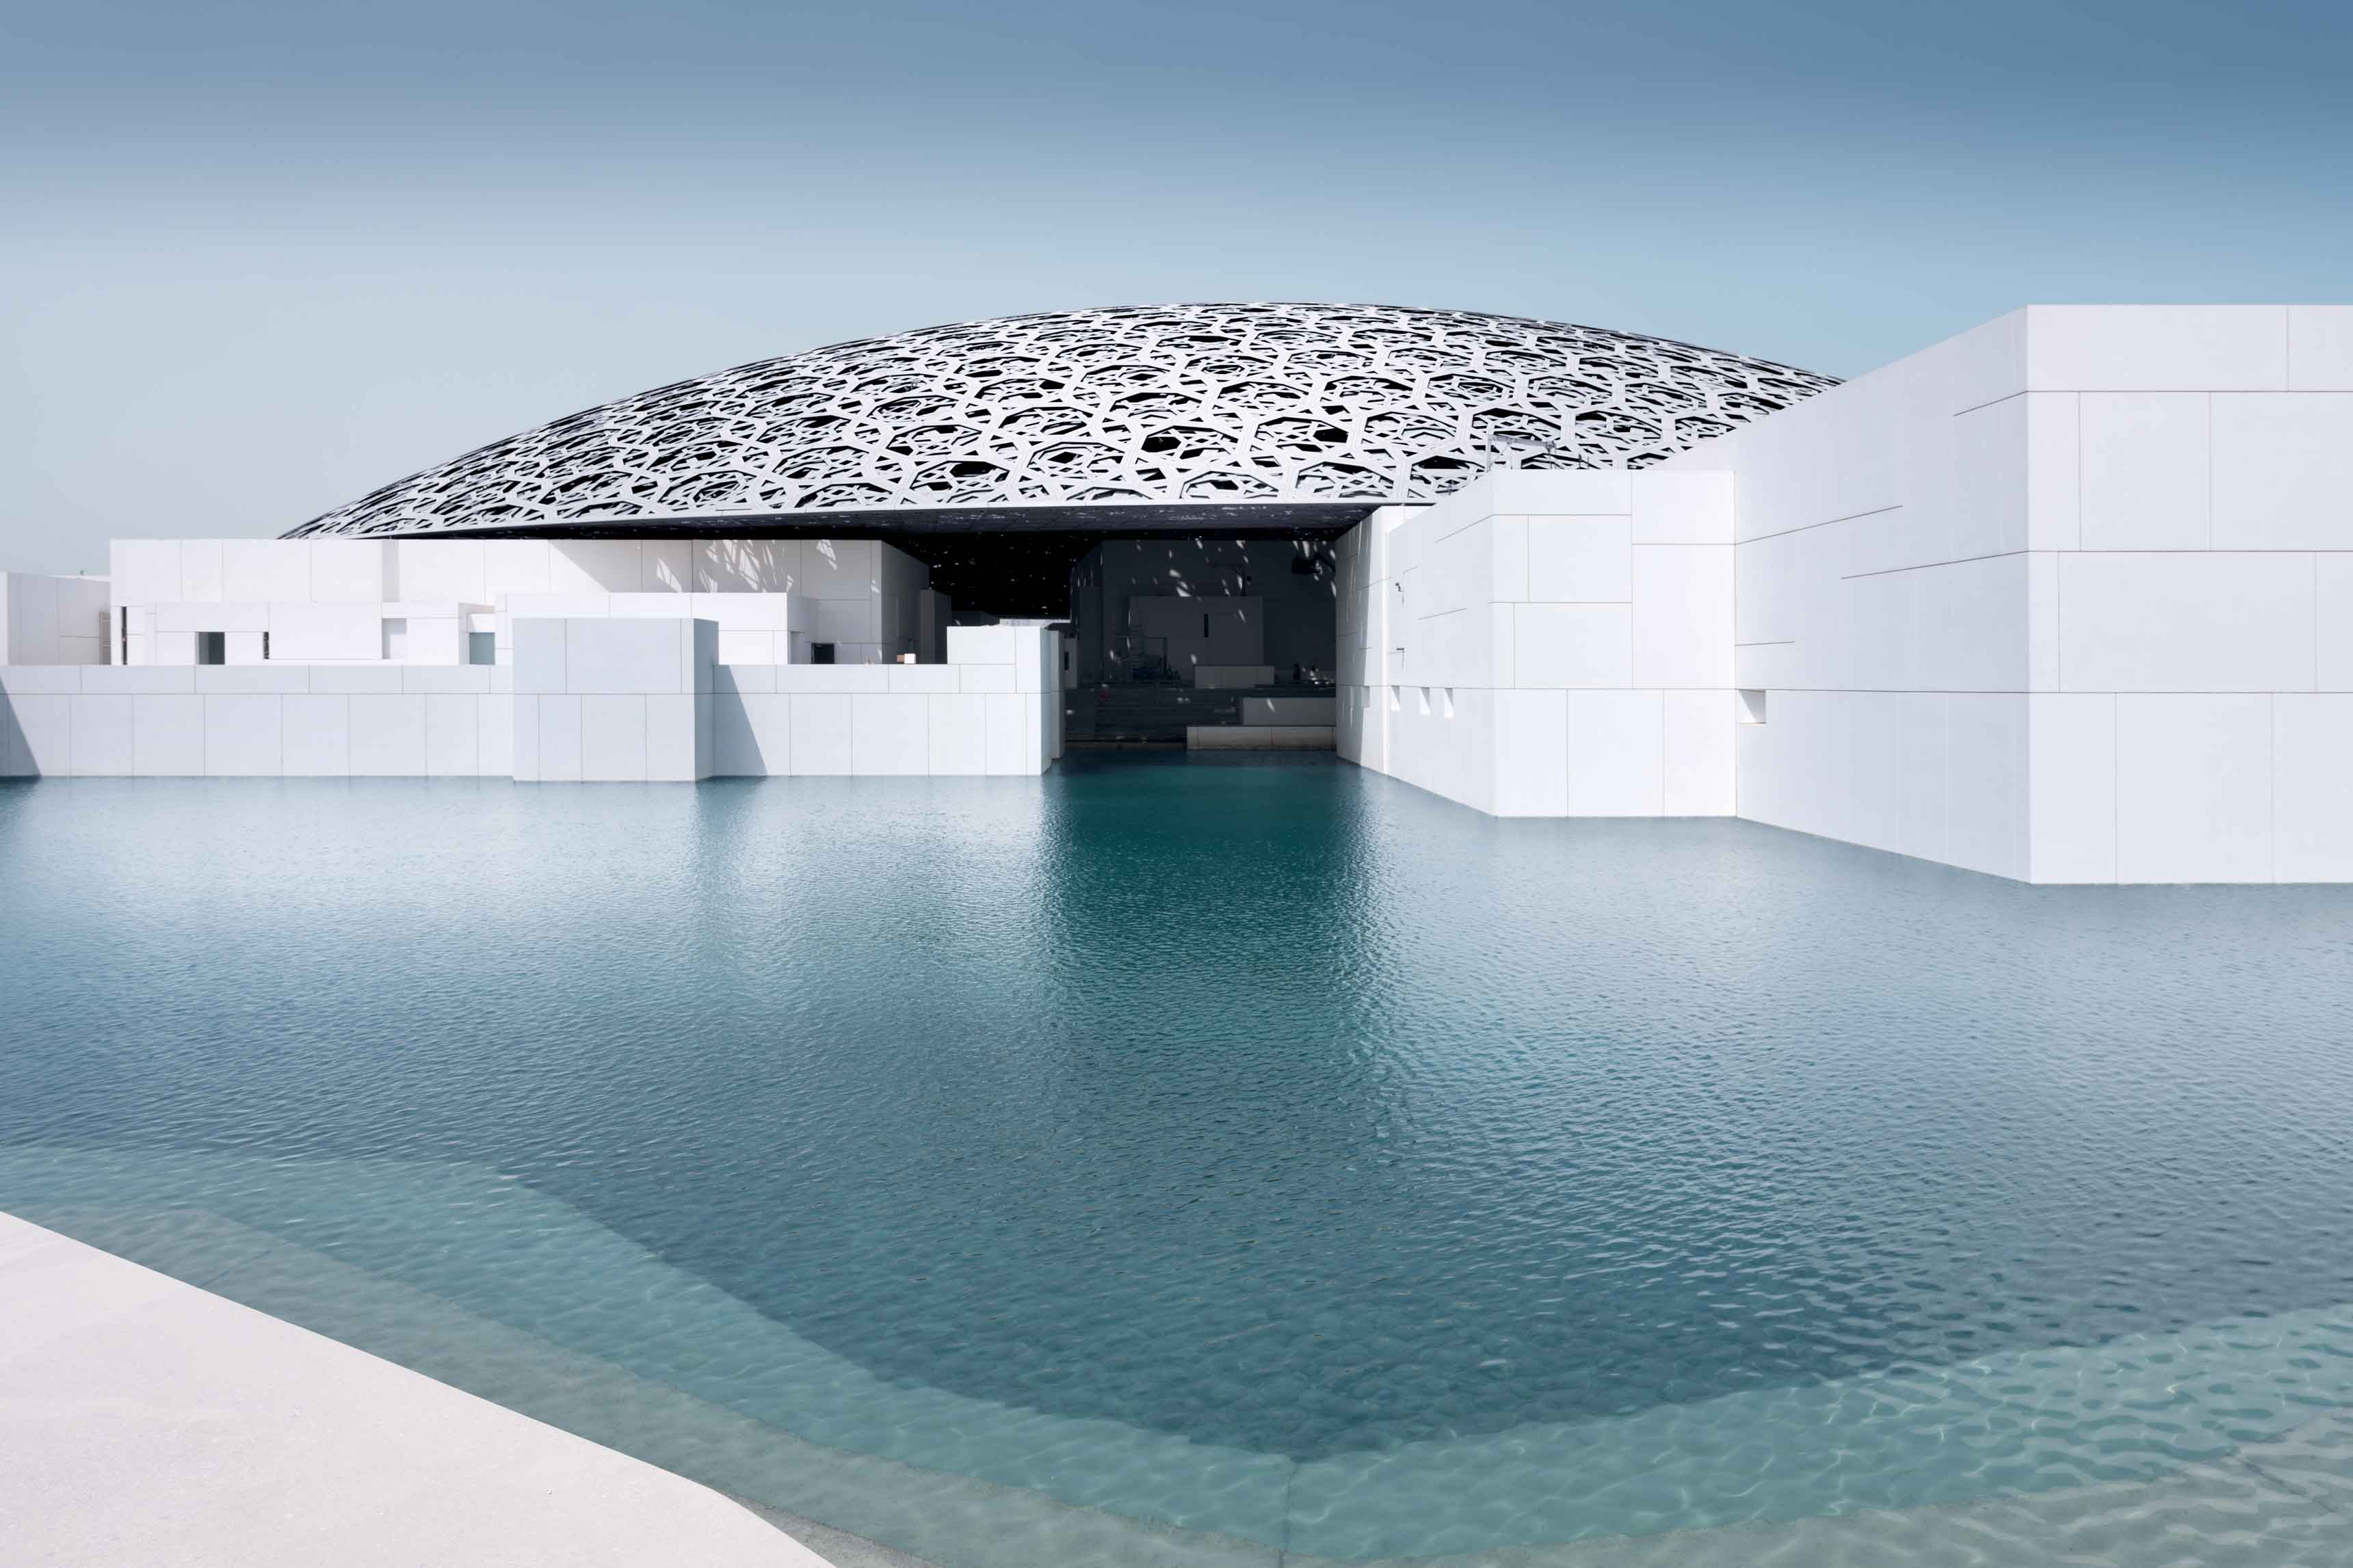 © Louvre Abu Dhabi, Photography by Mohamed Somji